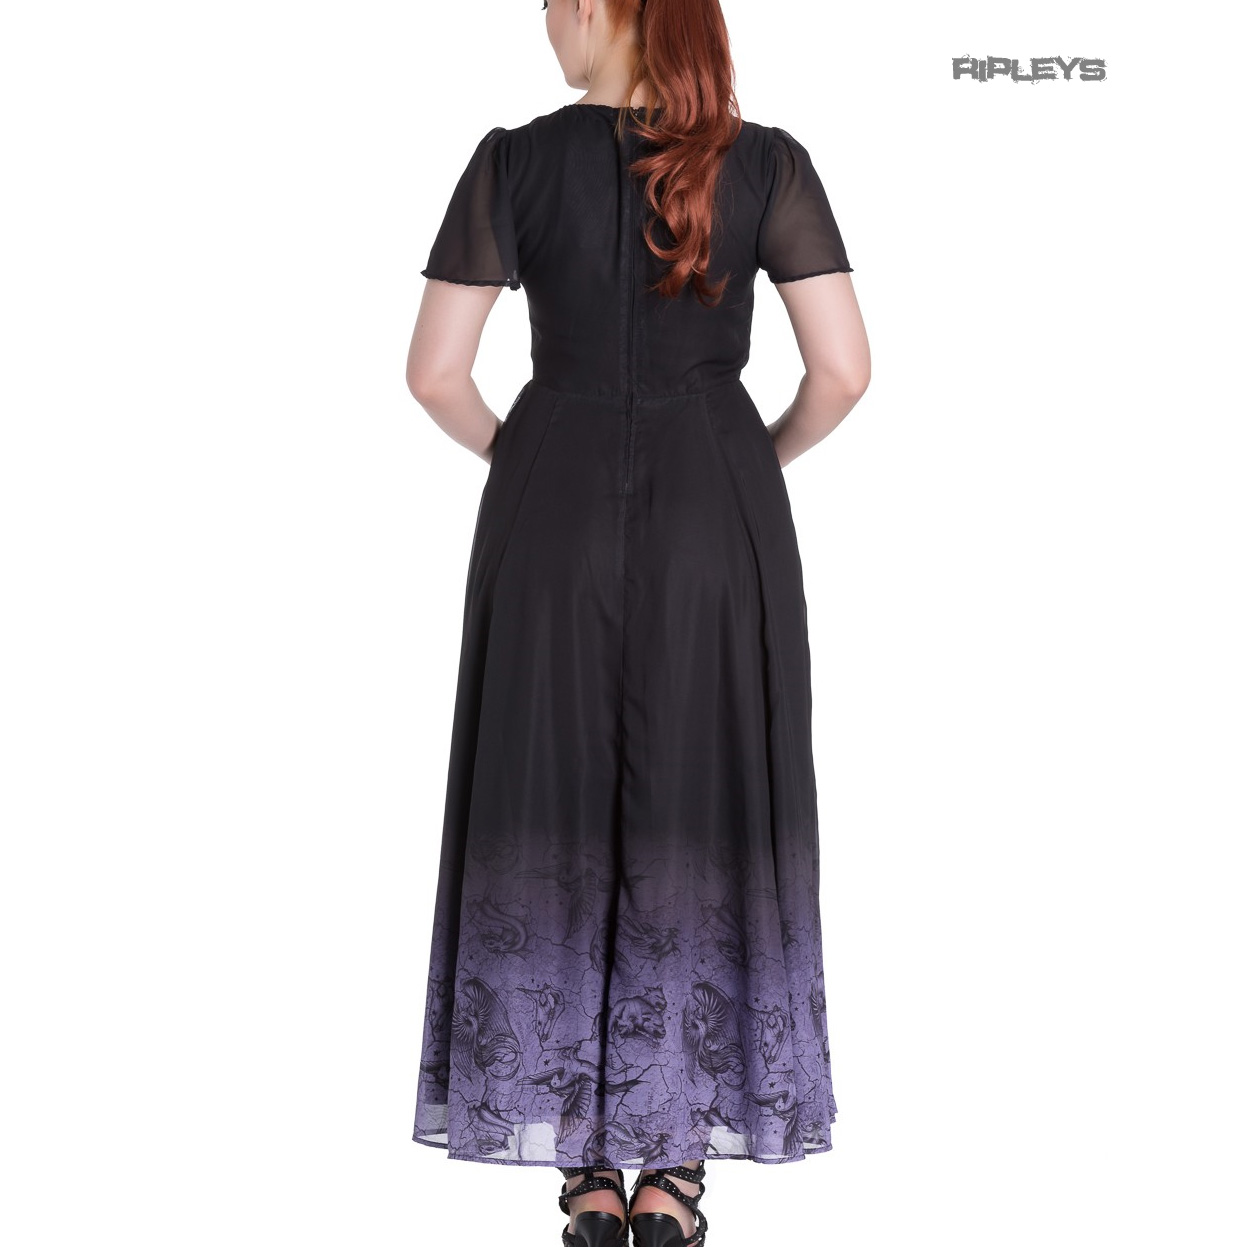 Hell-Bunny-Spin-Doctor-Goth-Maxi-Dress-EVADINE-Purple-Black-All-Sizes thumbnail 5